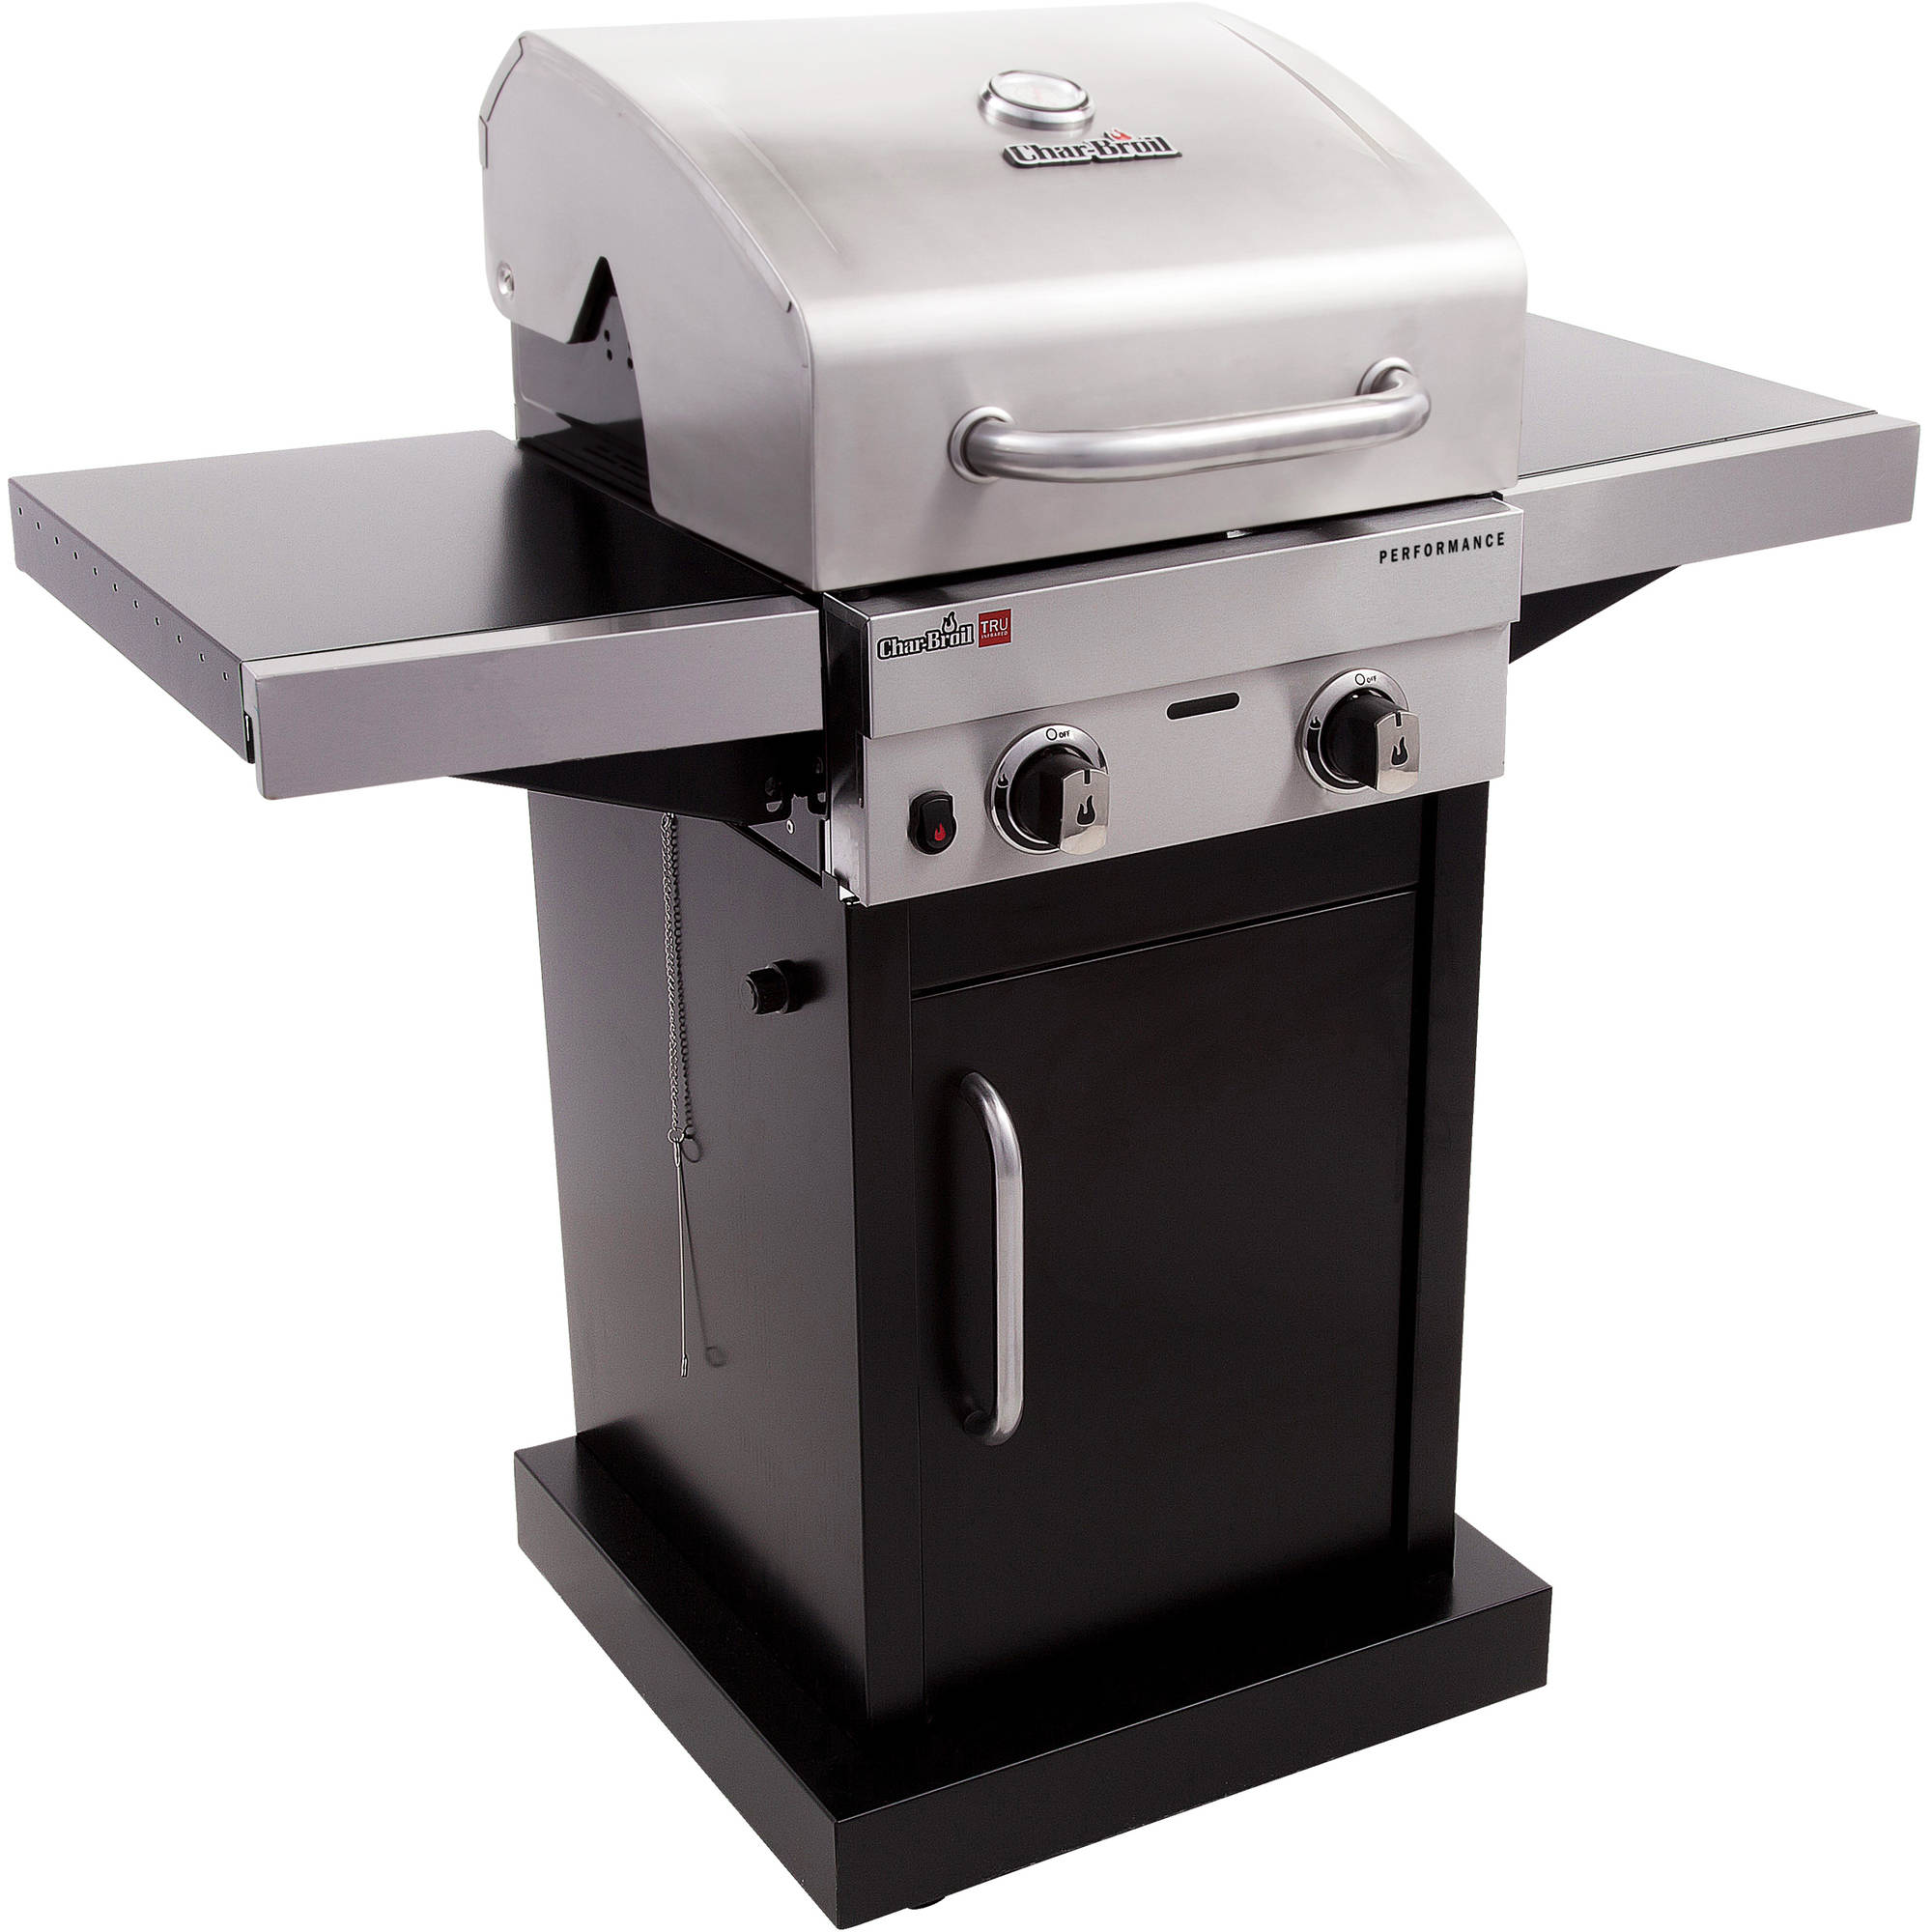 Char-Broil Tru-Infrared 2-Burner Gas Grill